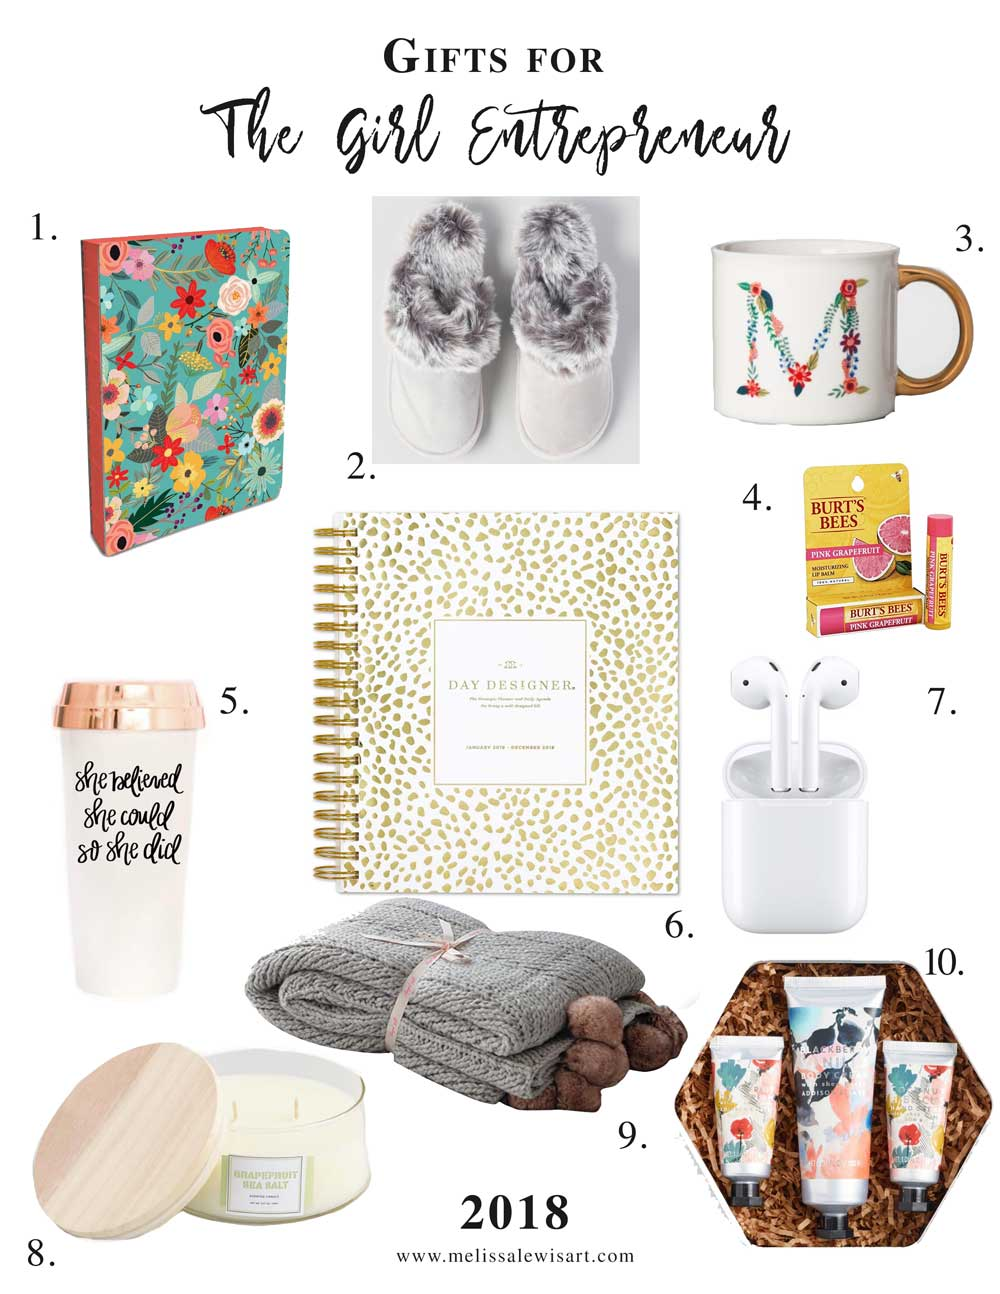 Girl Entrepreneur Holiday Gift Guide by Melissa Lewis